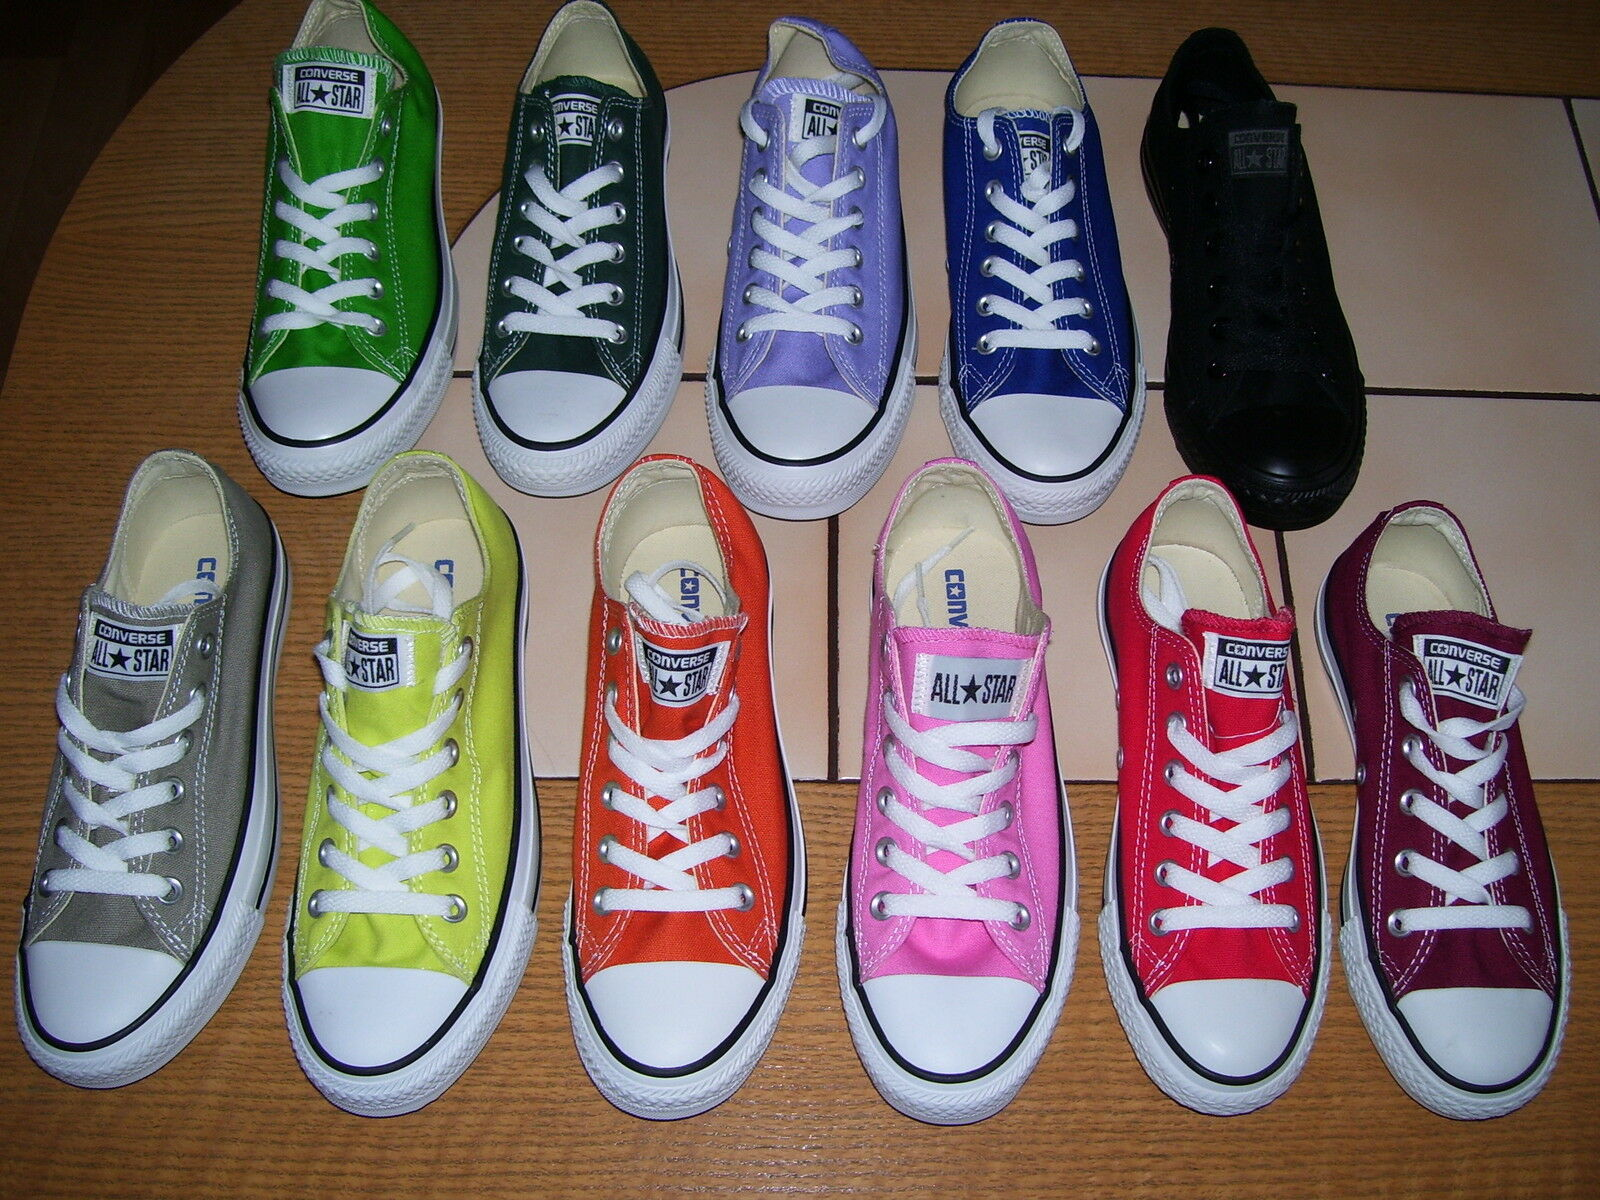 Converse All Star Ox Chucks Kult low Sommerfarben Grösse 36 bis 46 neu